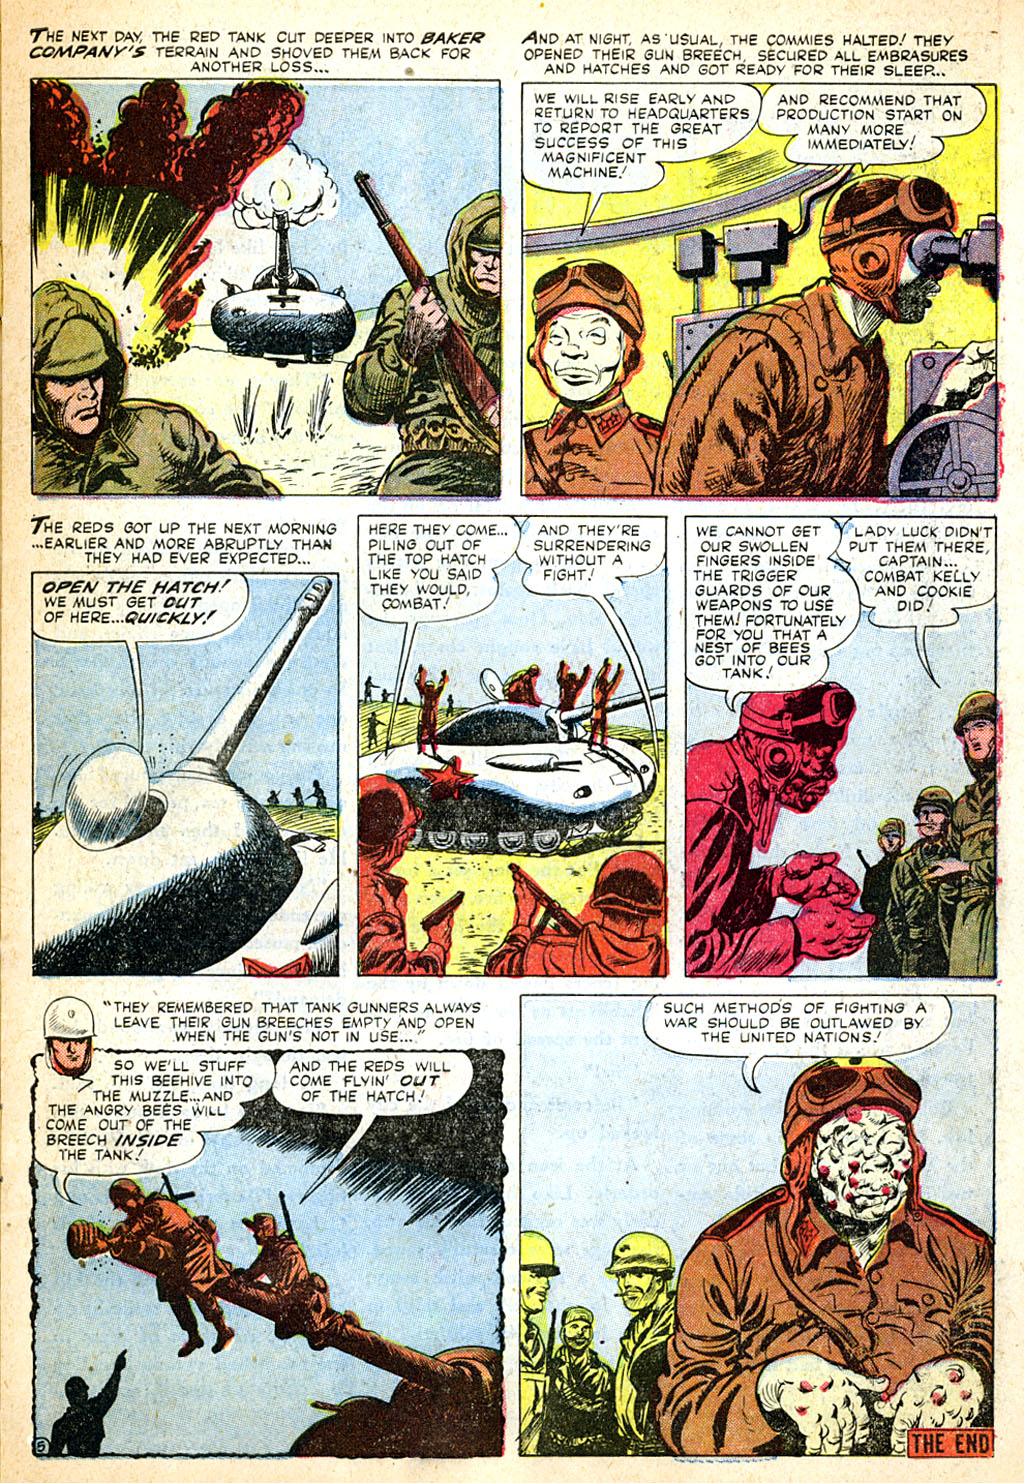 Combat Kelly (1951) issue 44 - Page 7